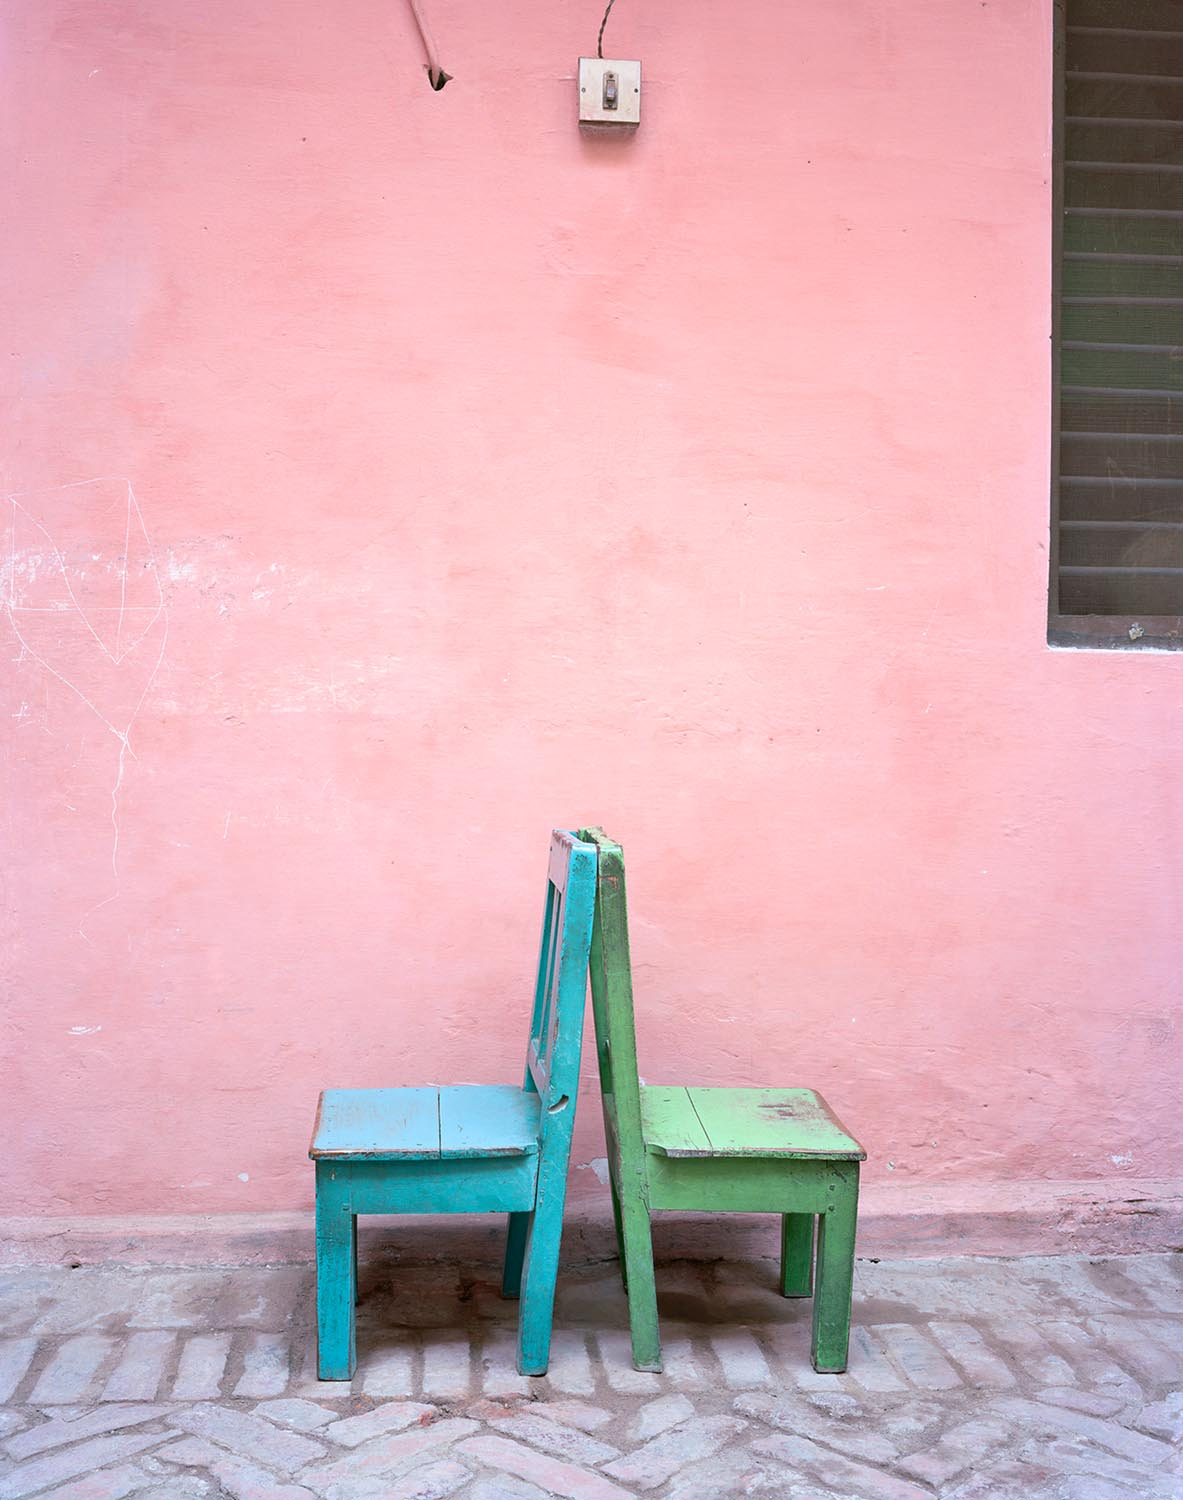 a-pink-dress-untitled-blue-green-chairs-2012